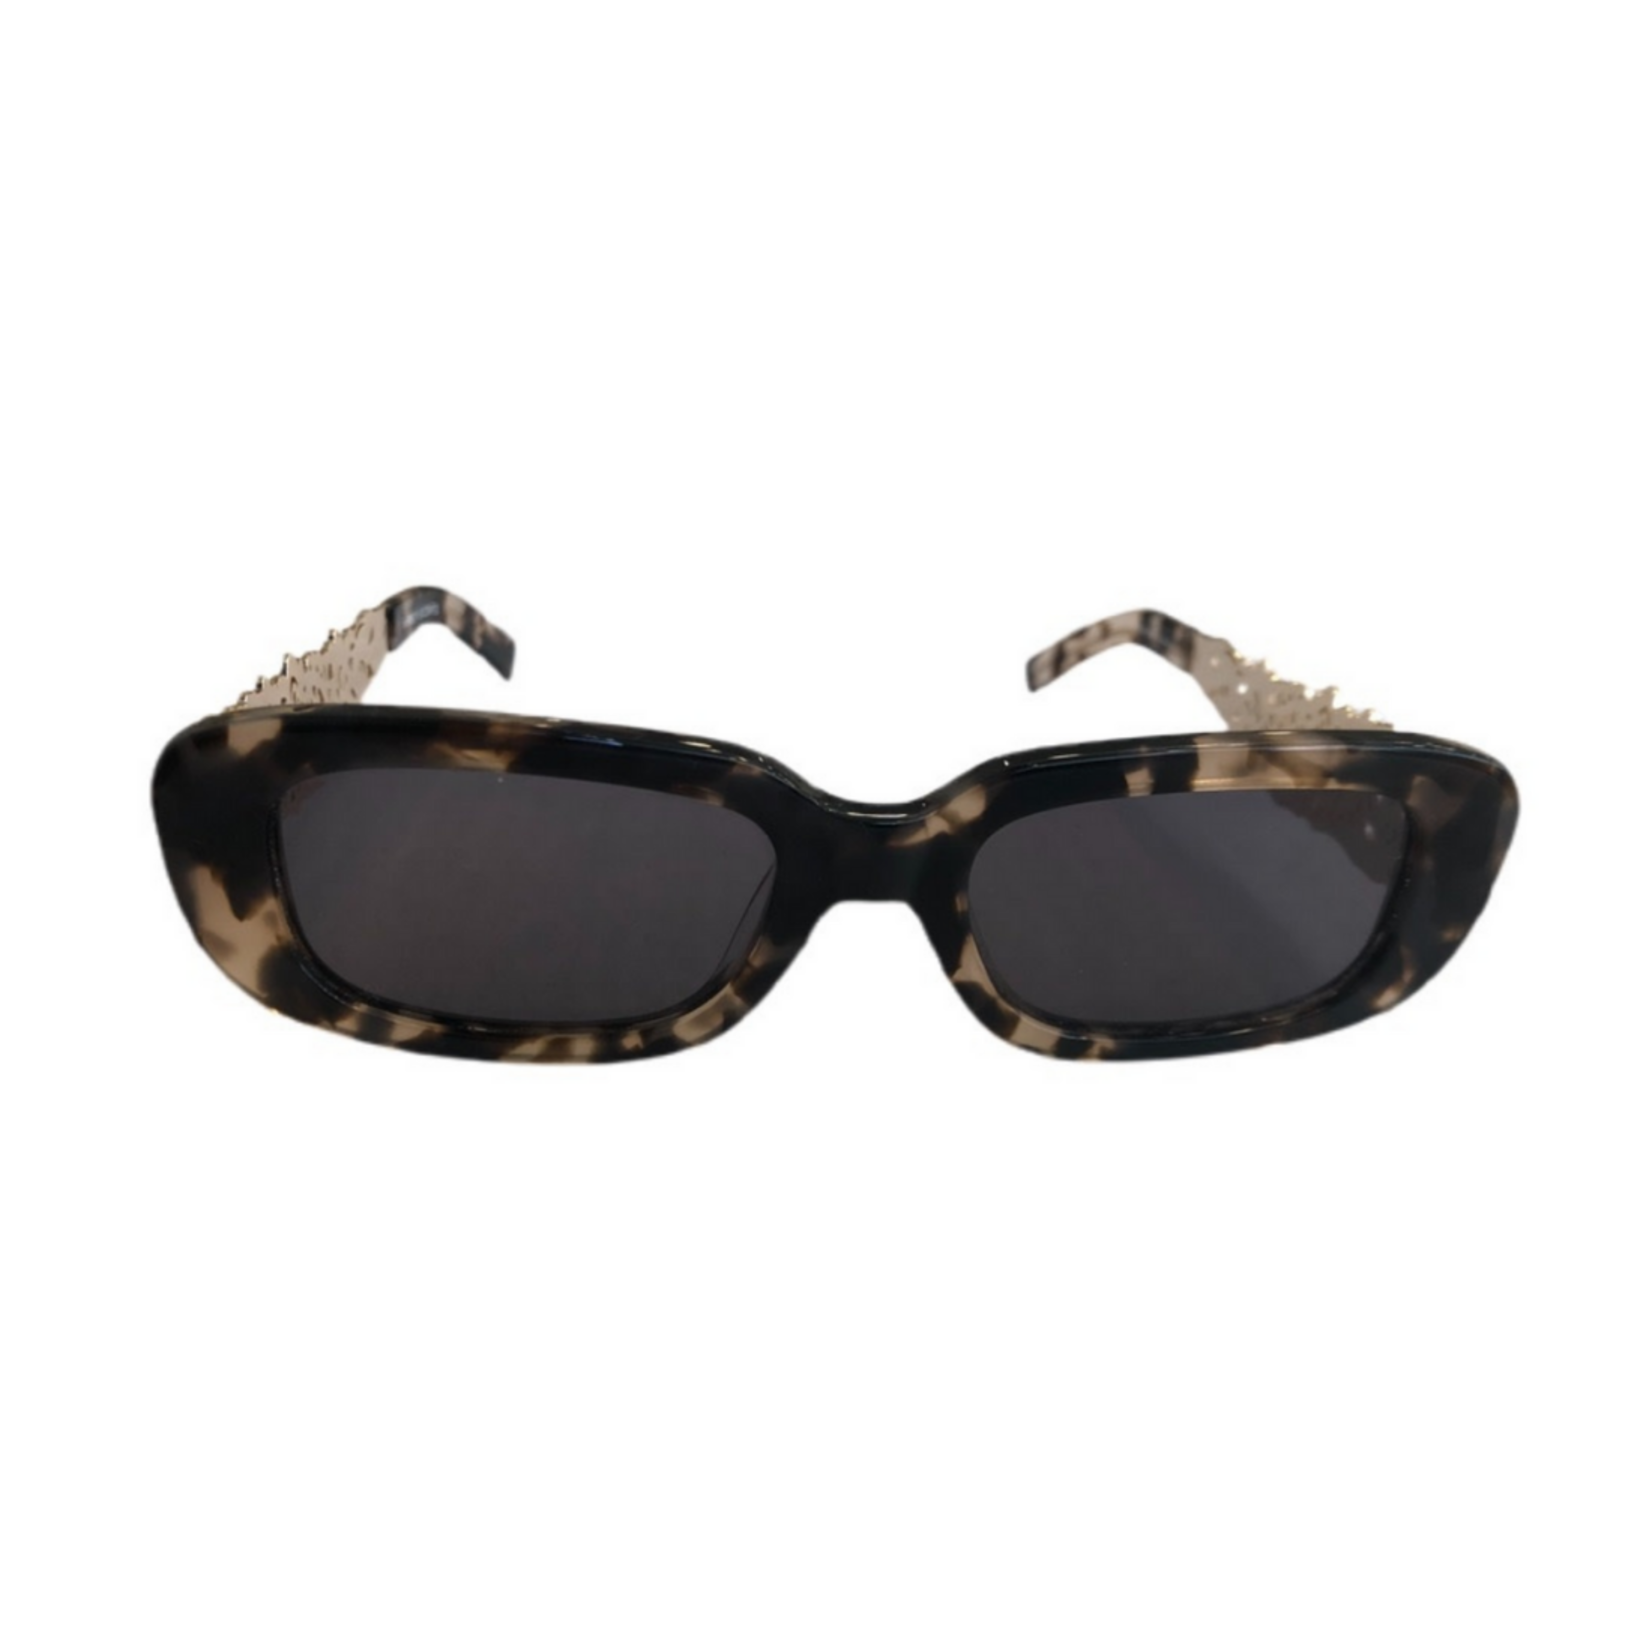 Amber Sceats Tortoise Sunglasses with Gold Side Detail